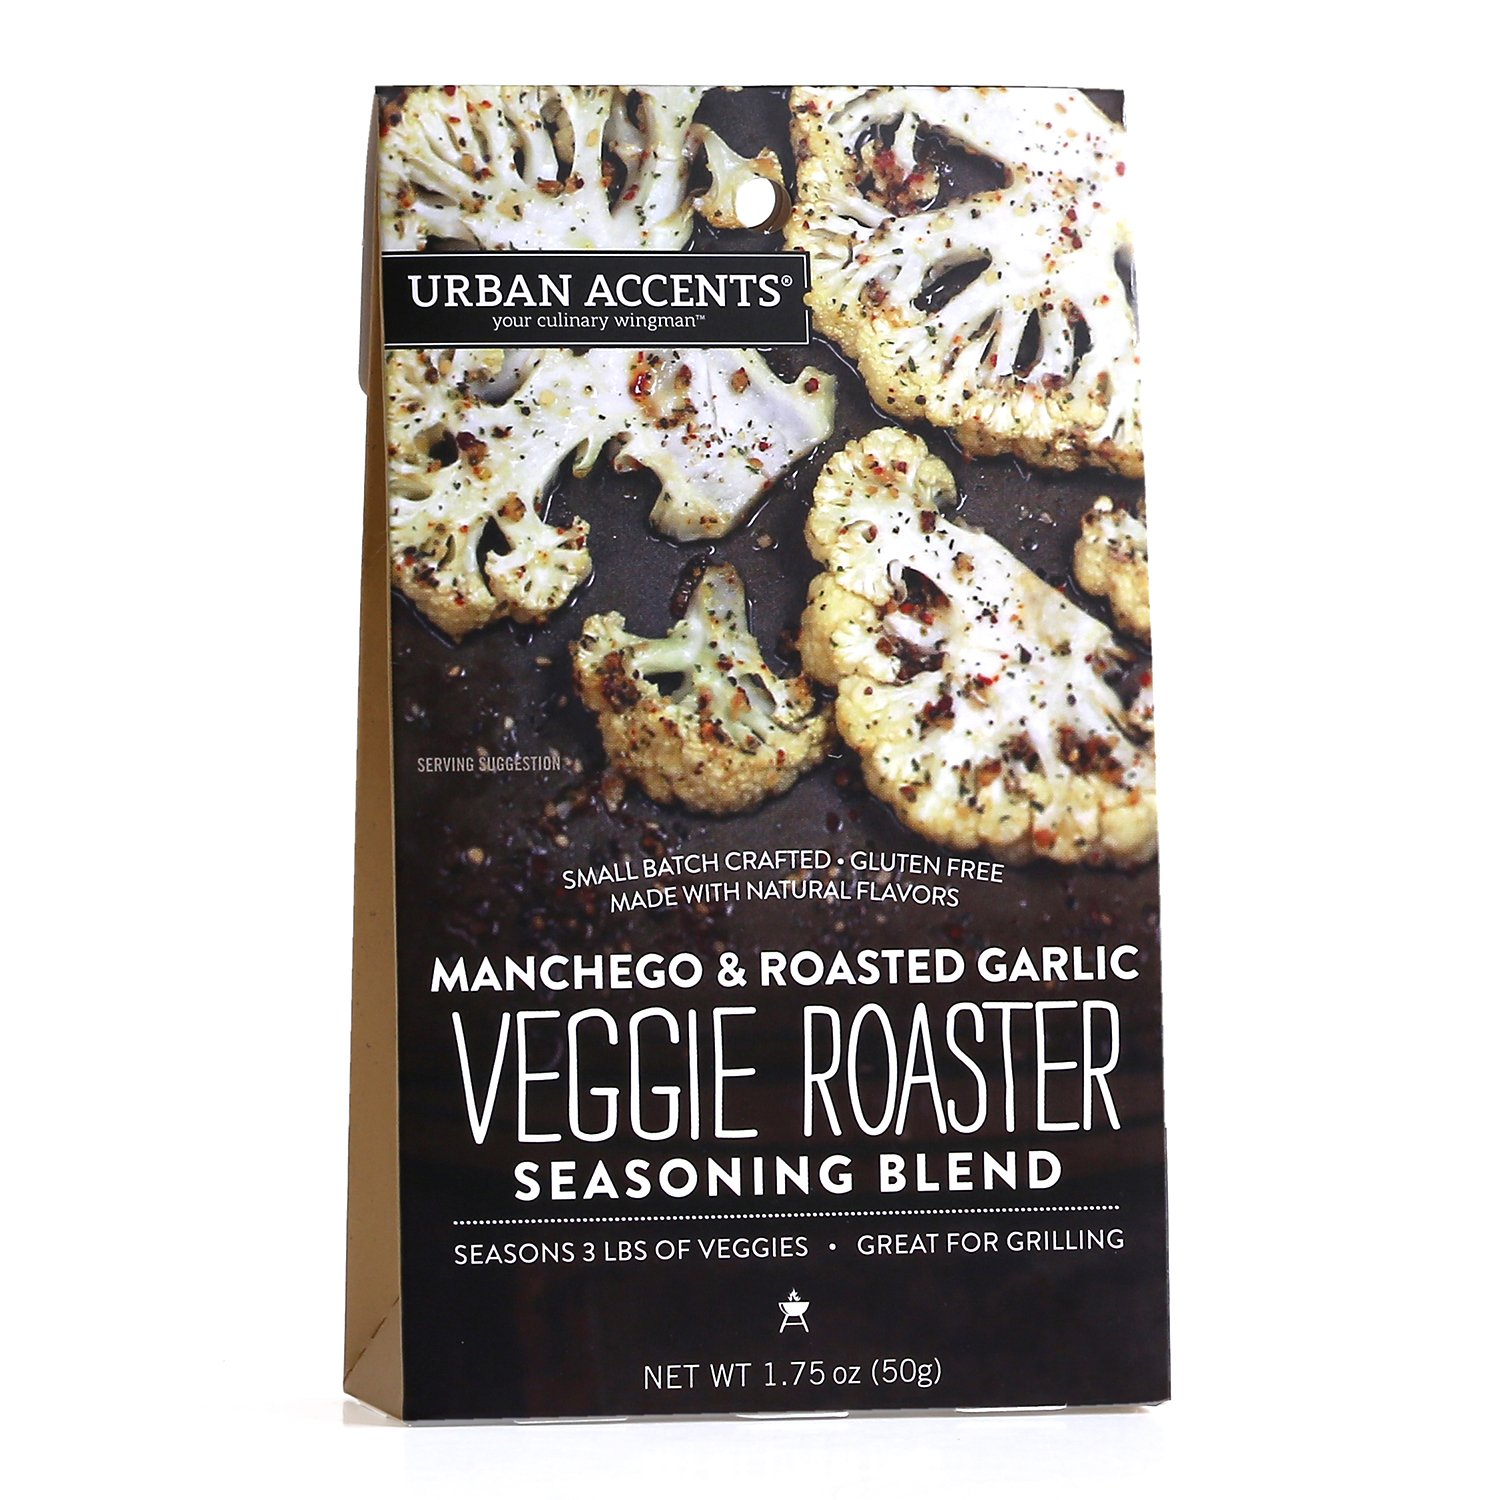 Manchego & Roasted Garlic Veggie Roaster Seasoning Blend – Vegetable Spice Mix, Urban Accents 1.25 Ounce